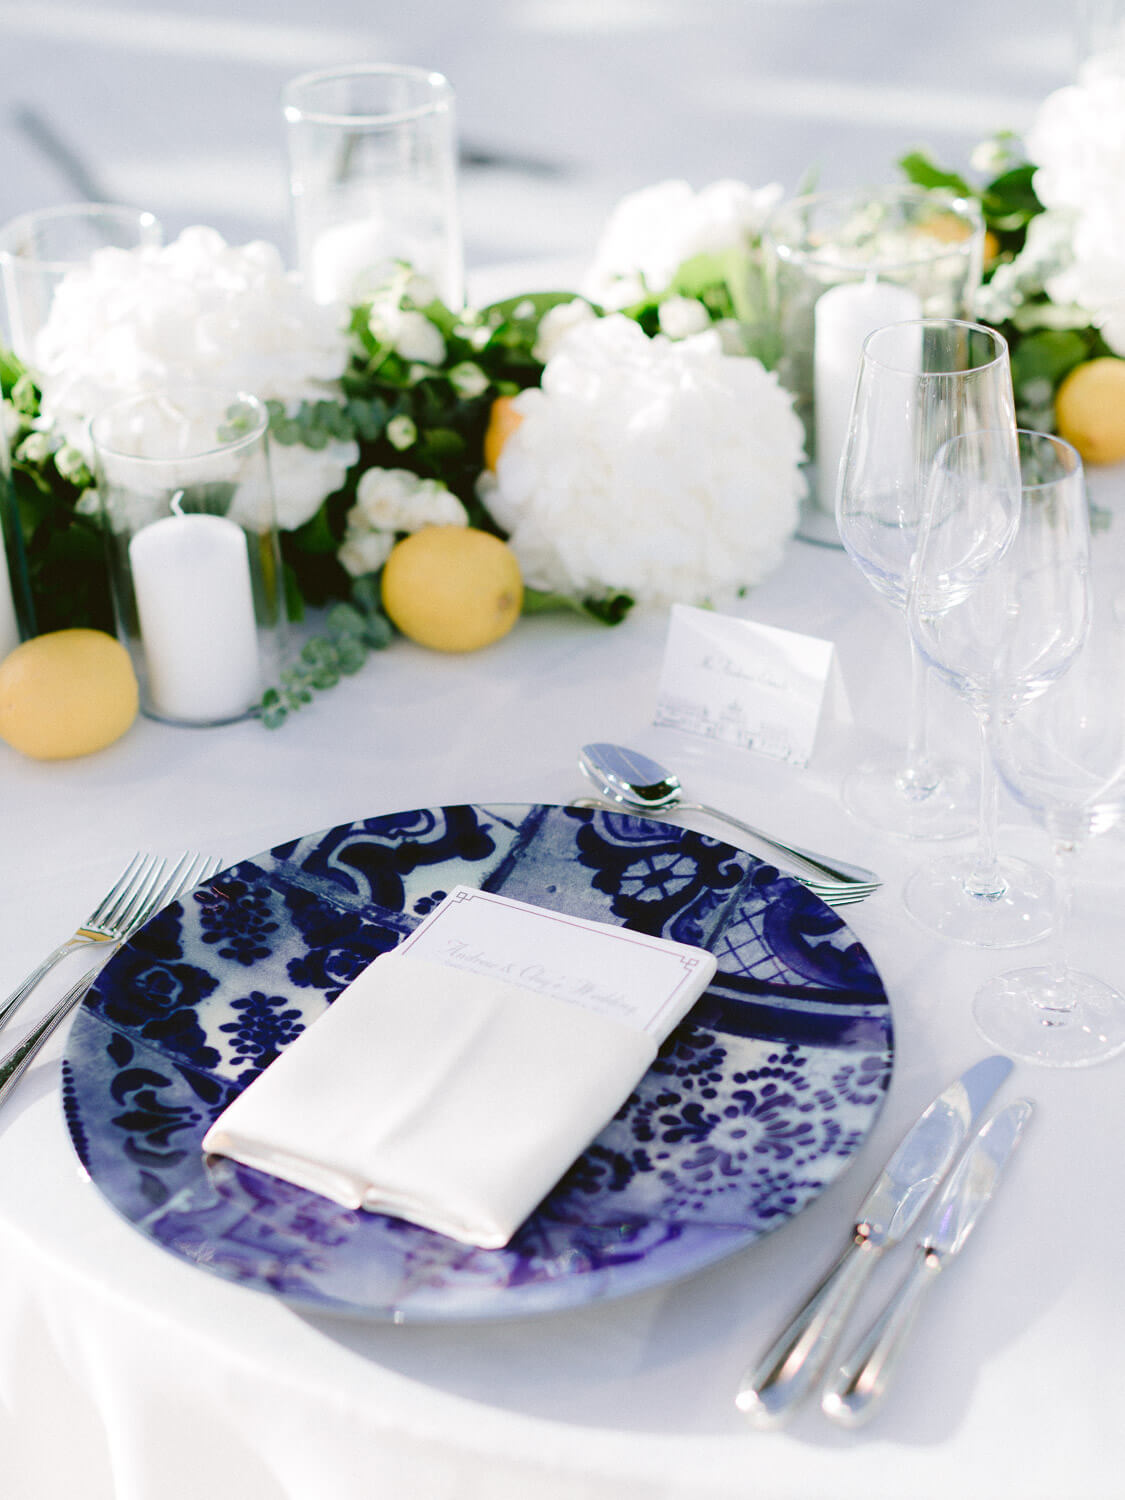 wedding reception table with blue Azulejos inspired dinnerware in Seteais Palace Sintra by Portugal Wedding Photographer